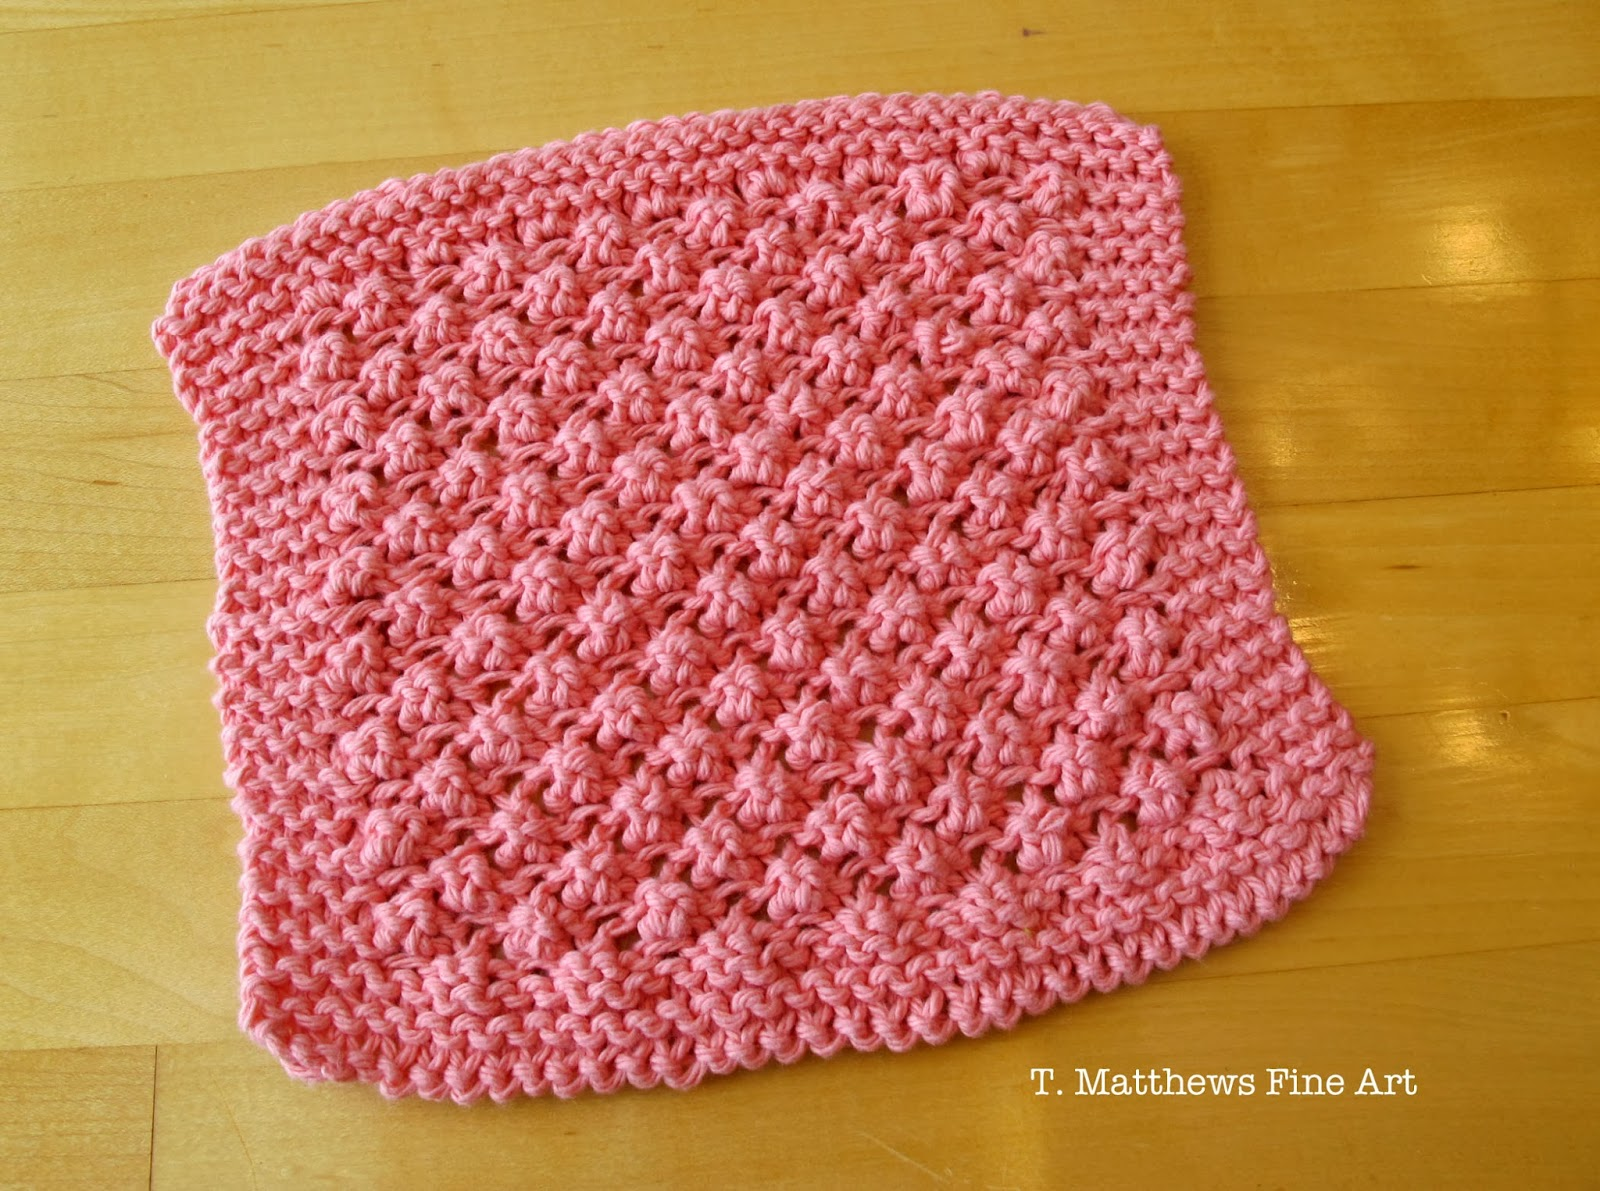 Knitting Patterns For Baby Washcloths : T. Matthews Fine Art: Free Knitting Pattern - Raspberry Baby Washcloth